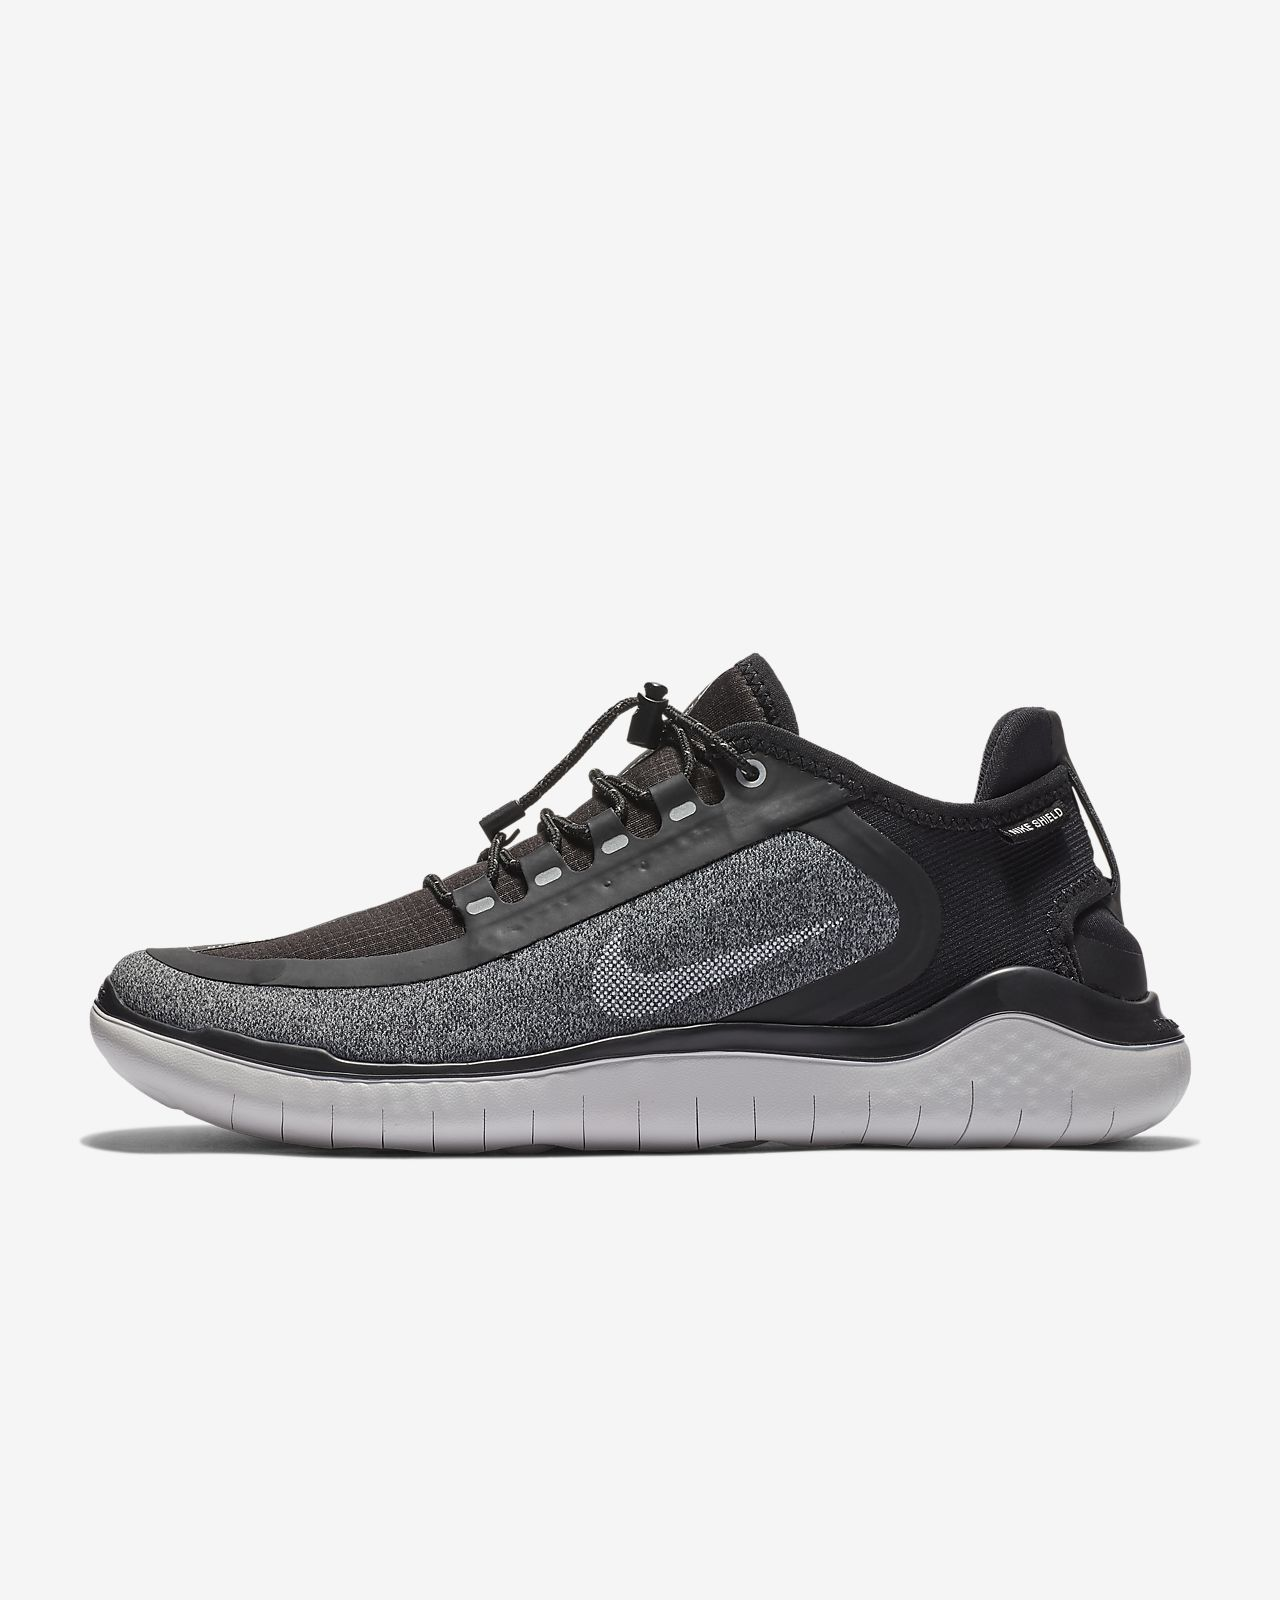 2018 Repellent Zapatillas De Water Nike Running Shield Rn Free ExzwPEnqBT